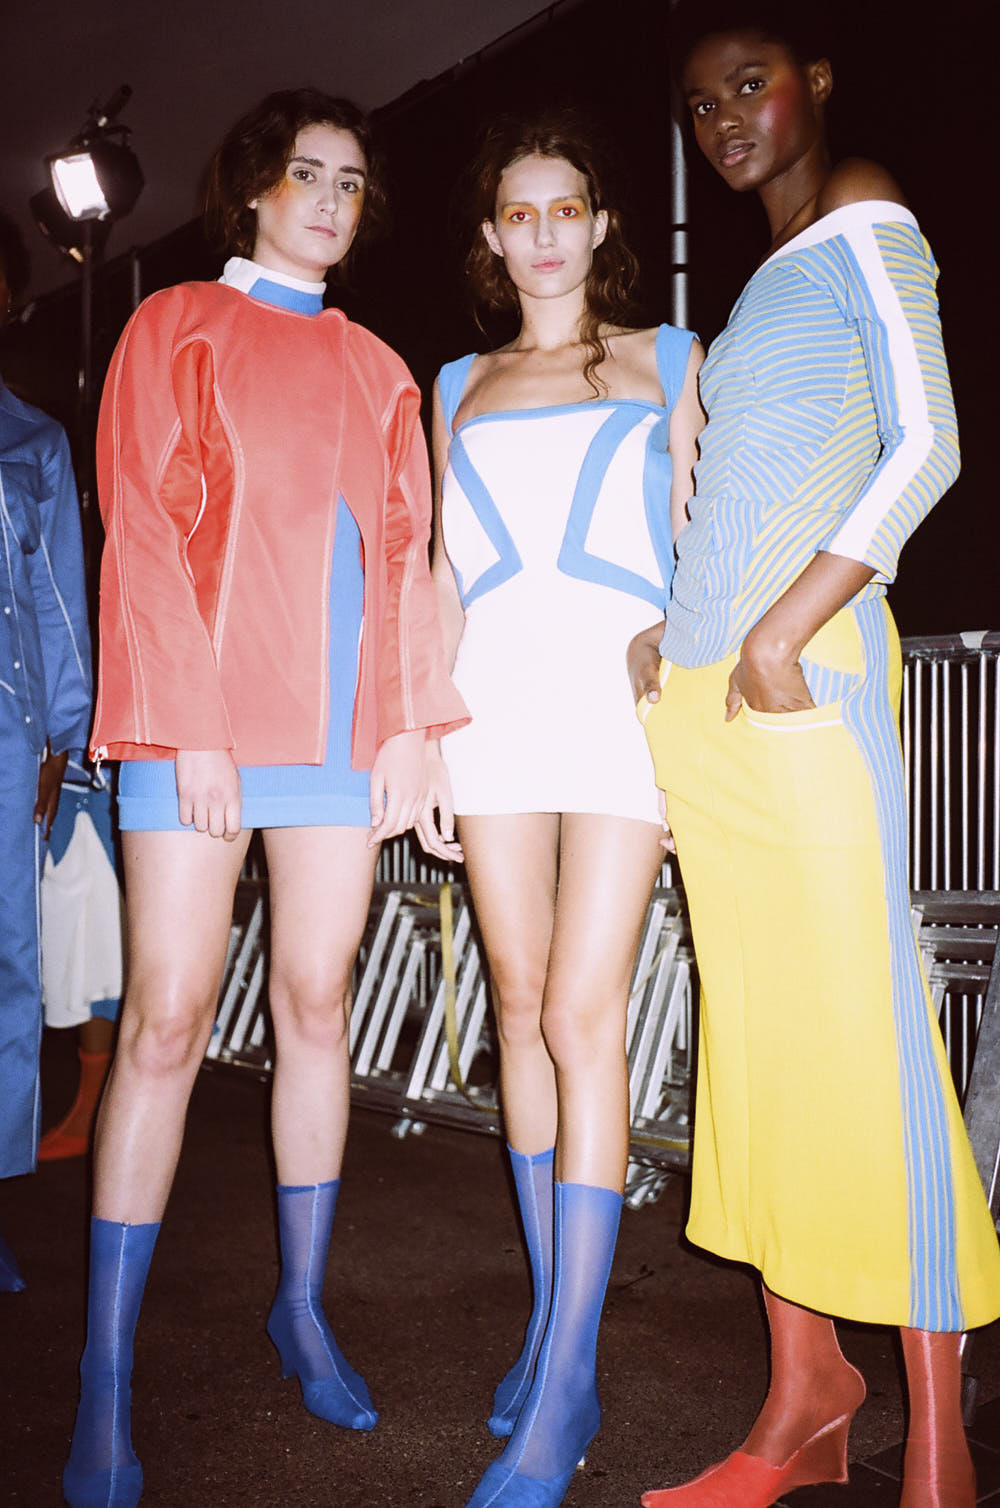 LFWSS17-FASHIONEAST-142web.jpg